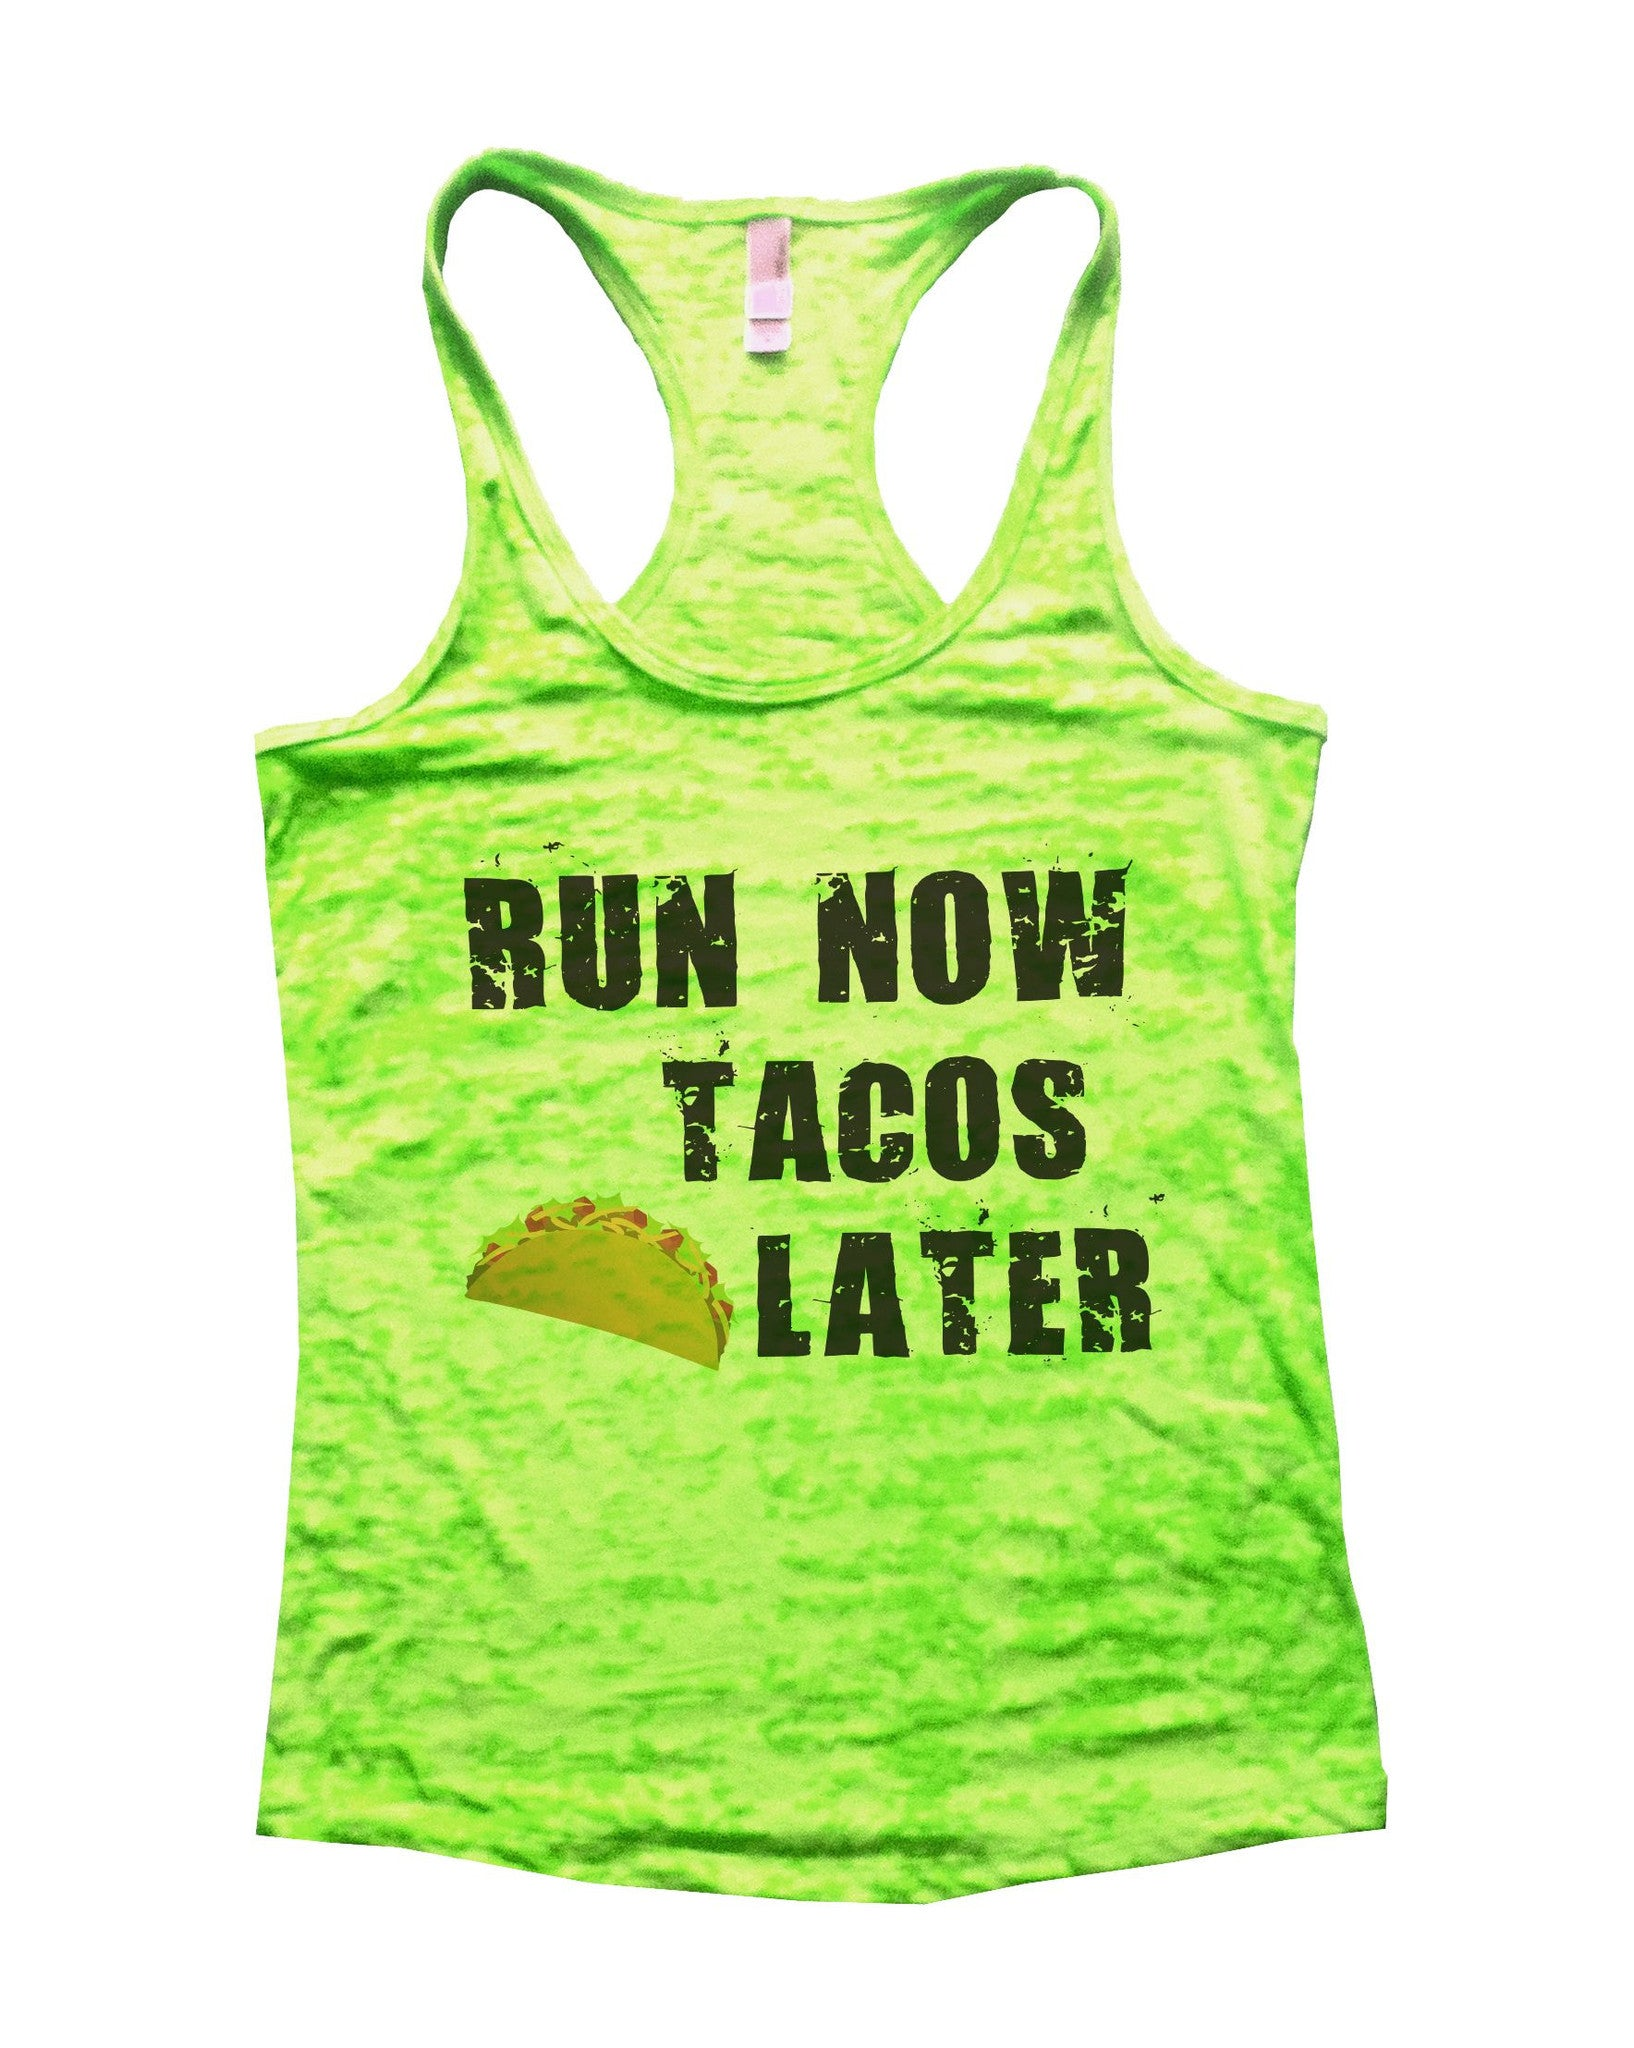 Run Now Tacos Later Burnout Tank Top By BurnoutTankTops.com - 650 - Funny Shirts Tank Tops Burnouts and Triblends  - 3